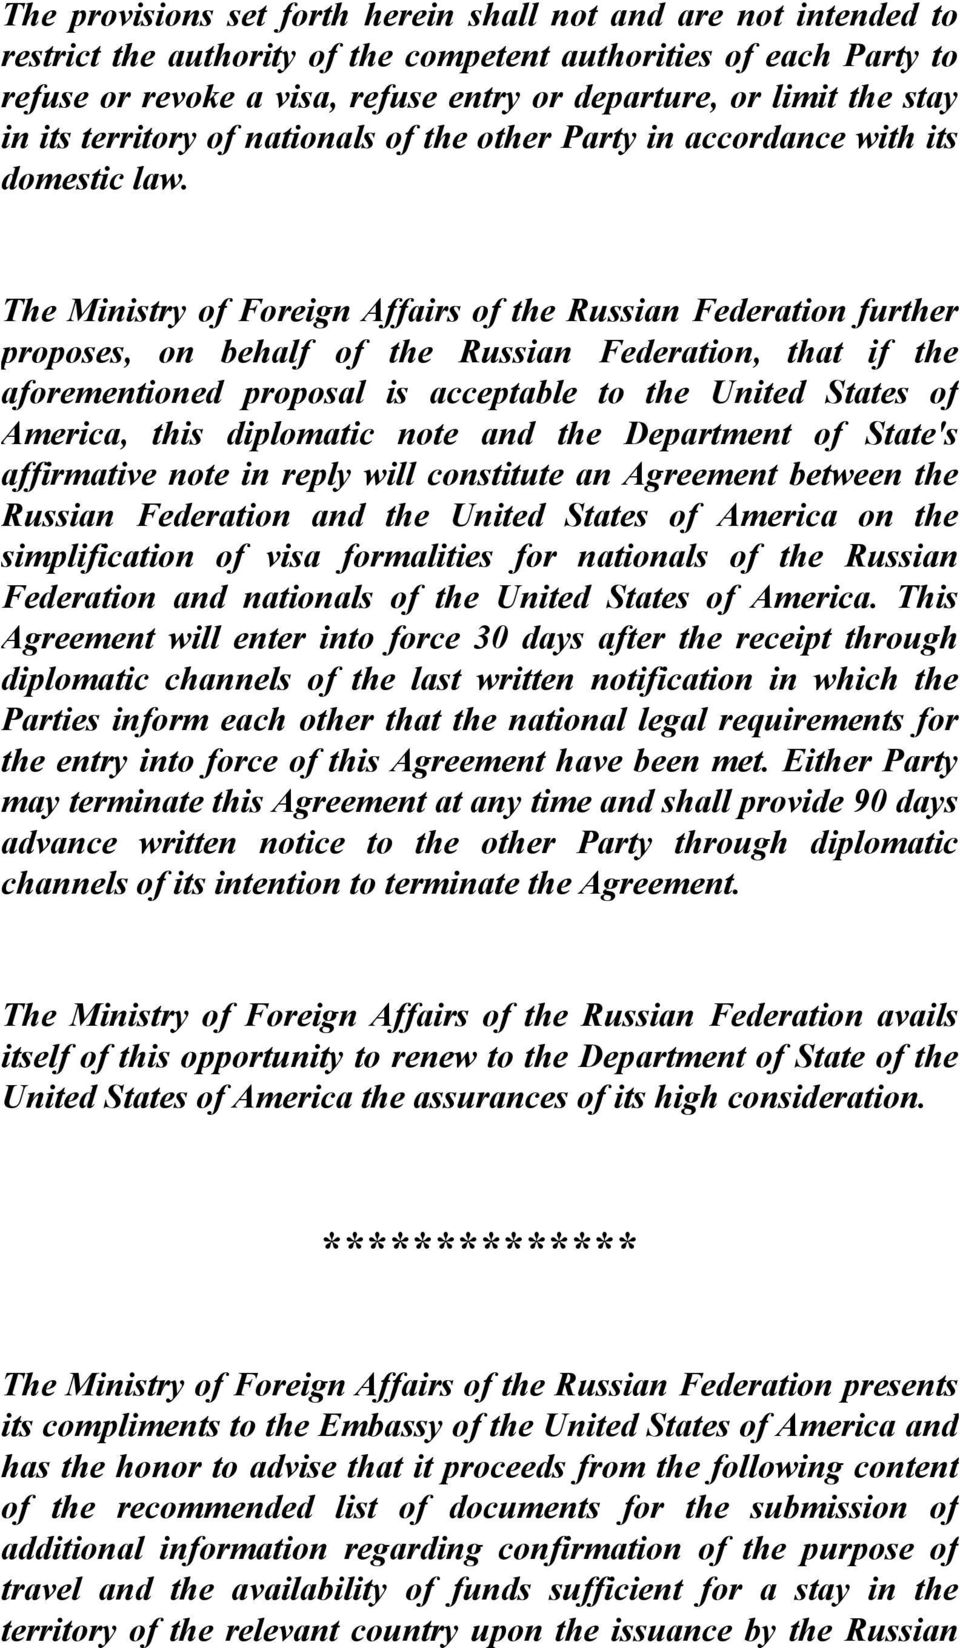 The Ministry of Foreign Affairs of the Russian Federation further proposes, on behalf of the Russian Federation, that if the aforementioned proposal is acceptable to the United States of America,